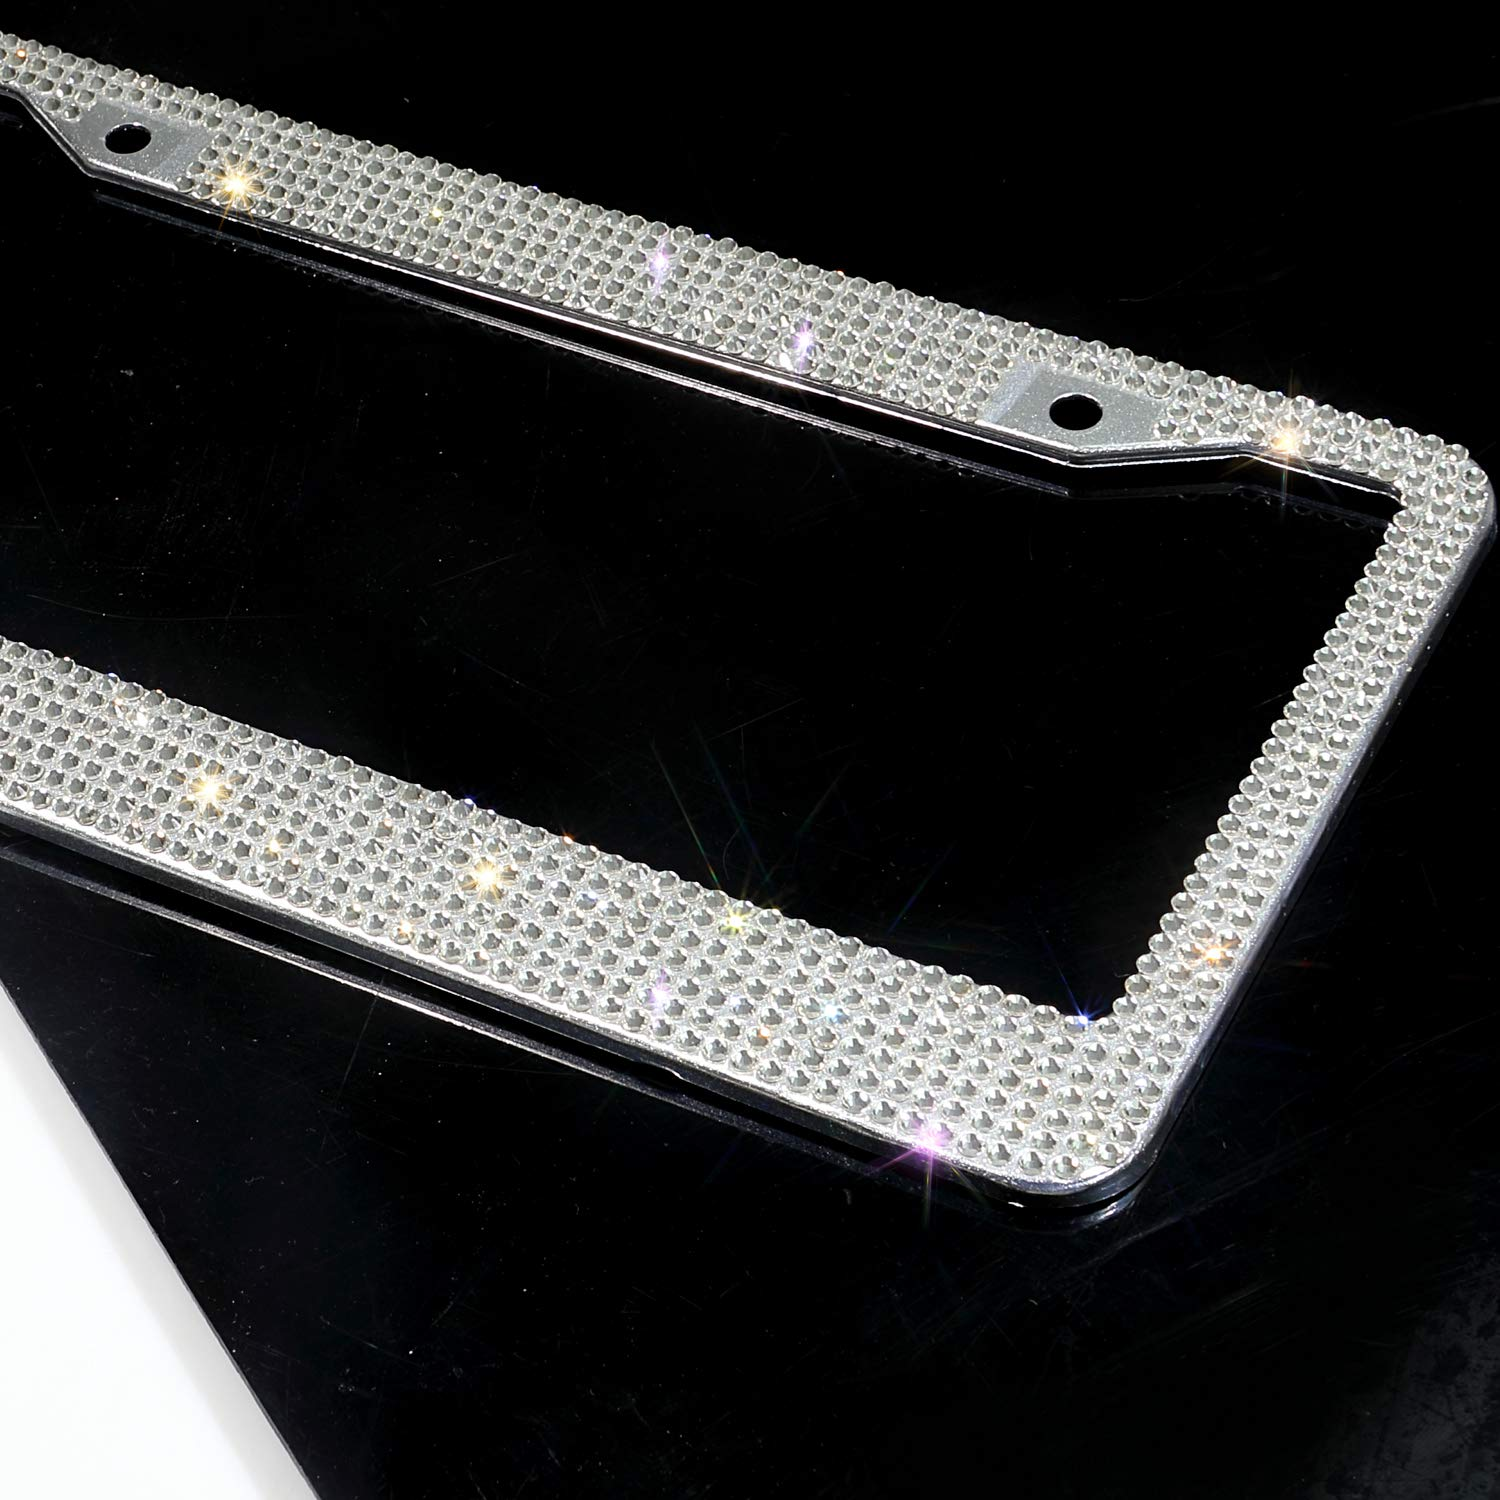 Handmade Luxury AAA Grade Clear Crystal Rhinestone Premium Car//Truck//SUV License Plate Frame Cover Cute Bling License Plate Holder 1000 1 Frame pcs Finest 14 Facets SS20 Glass Clear Crystal